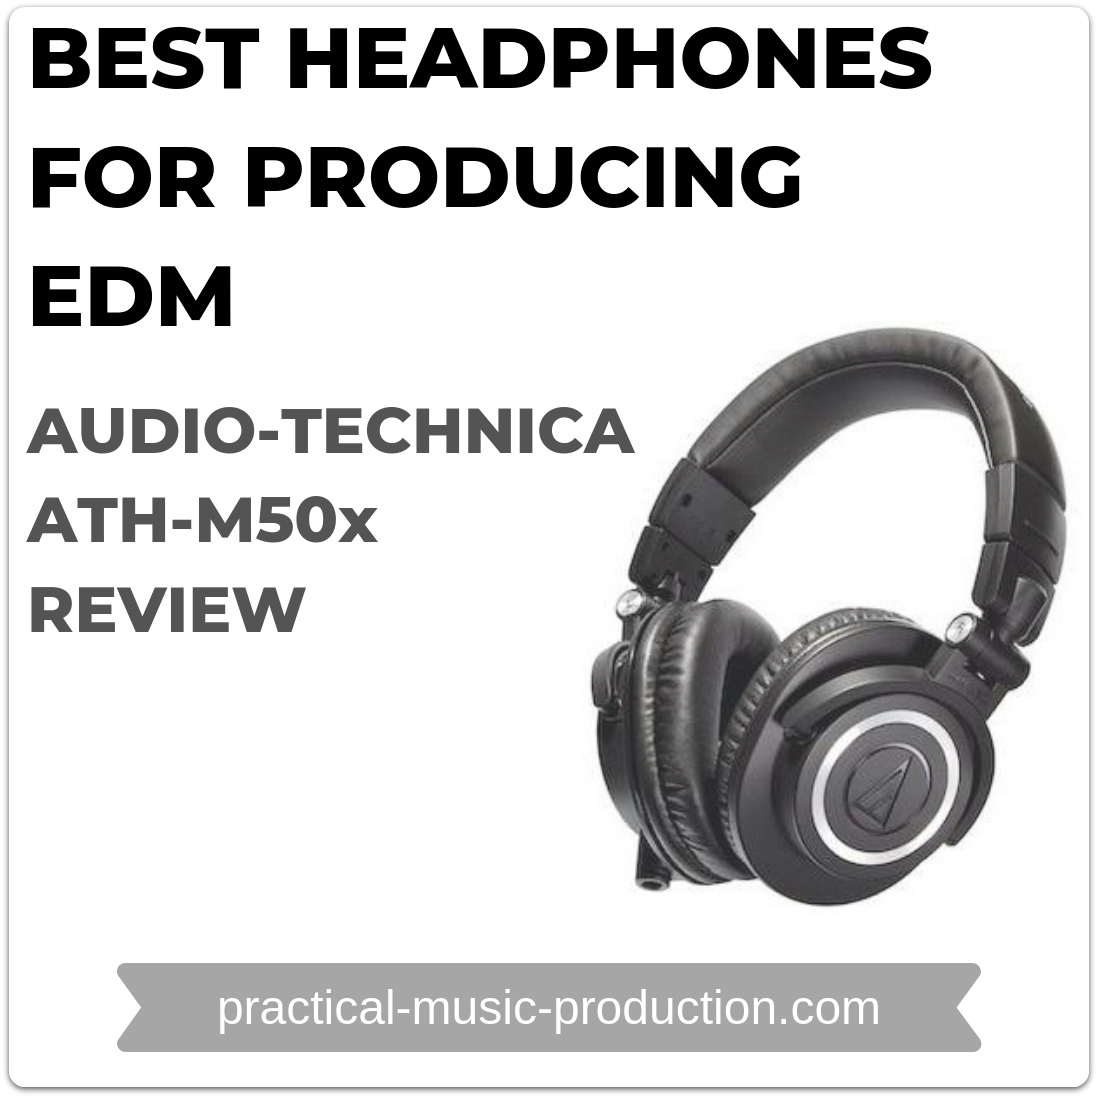 The best headphones for producing EDM are the Audio-Technica ATH-M50x studio headphones